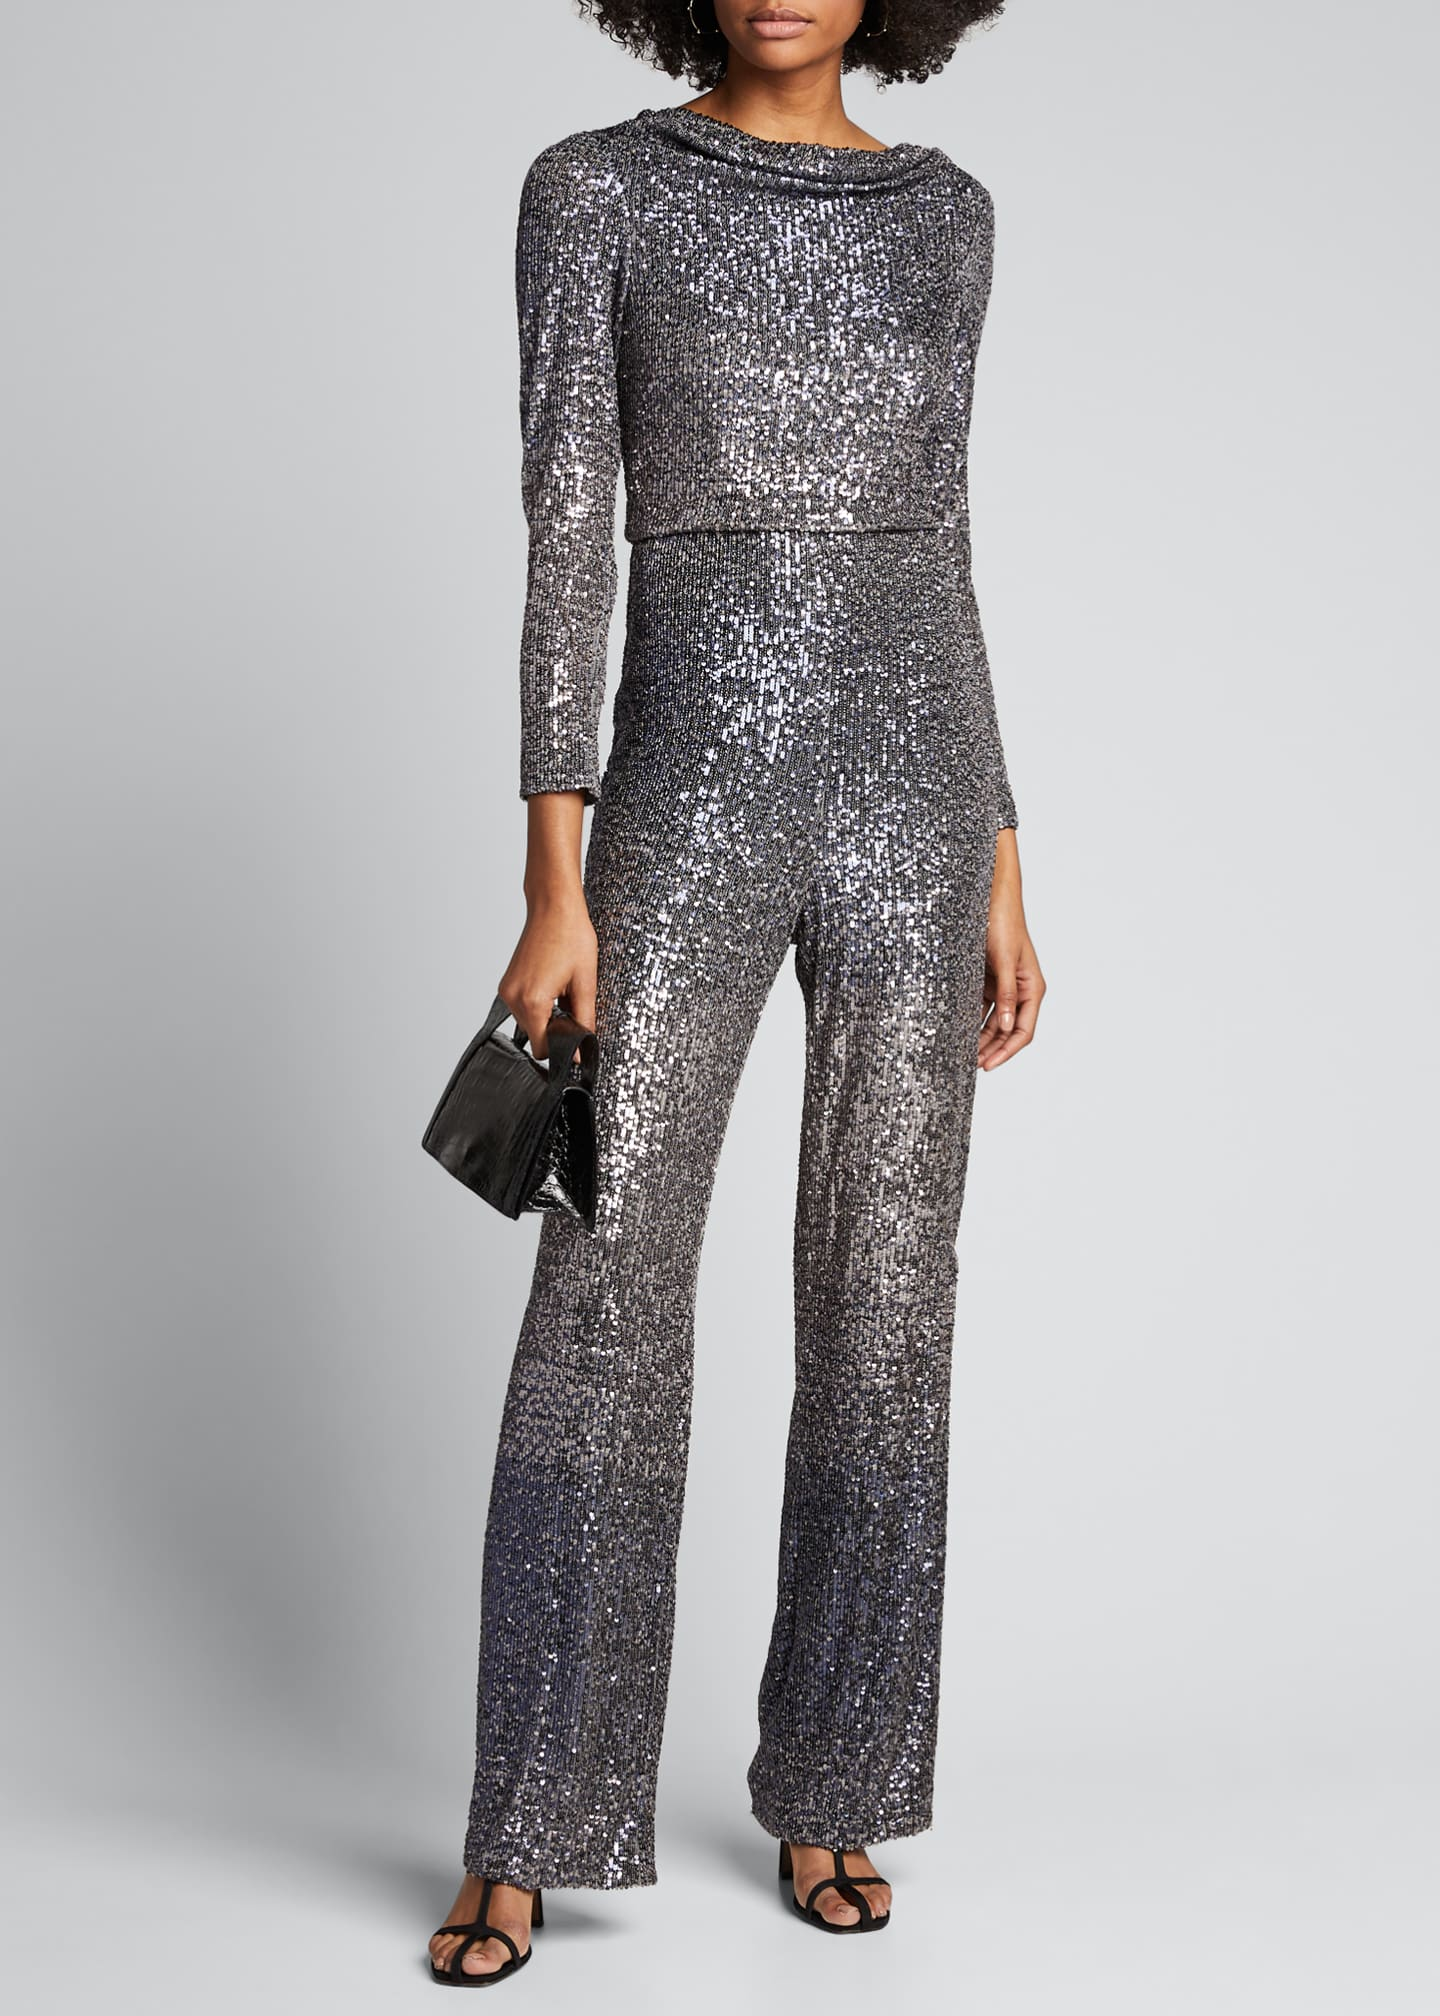 Badgley Mischka Collection Ombre Sequin Cowl-Neck Long-Sleeve